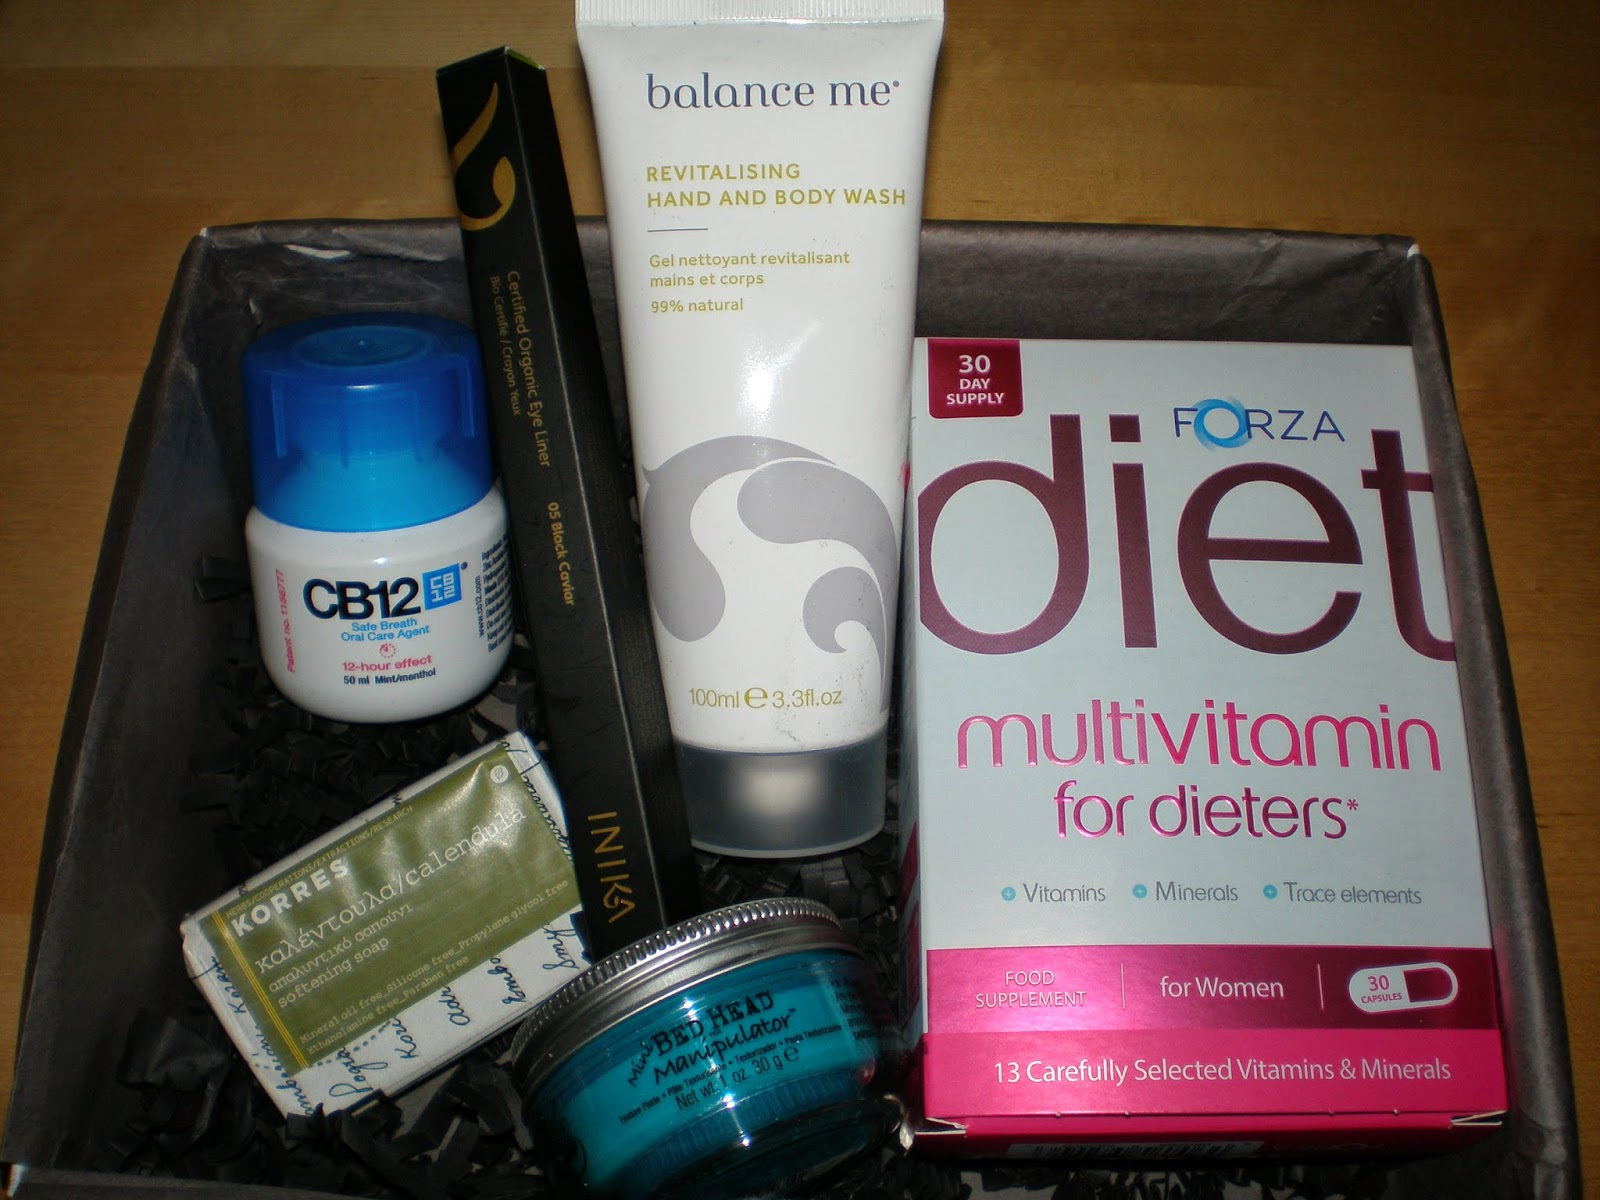 Lookfantastic April 2015 beauty box contents